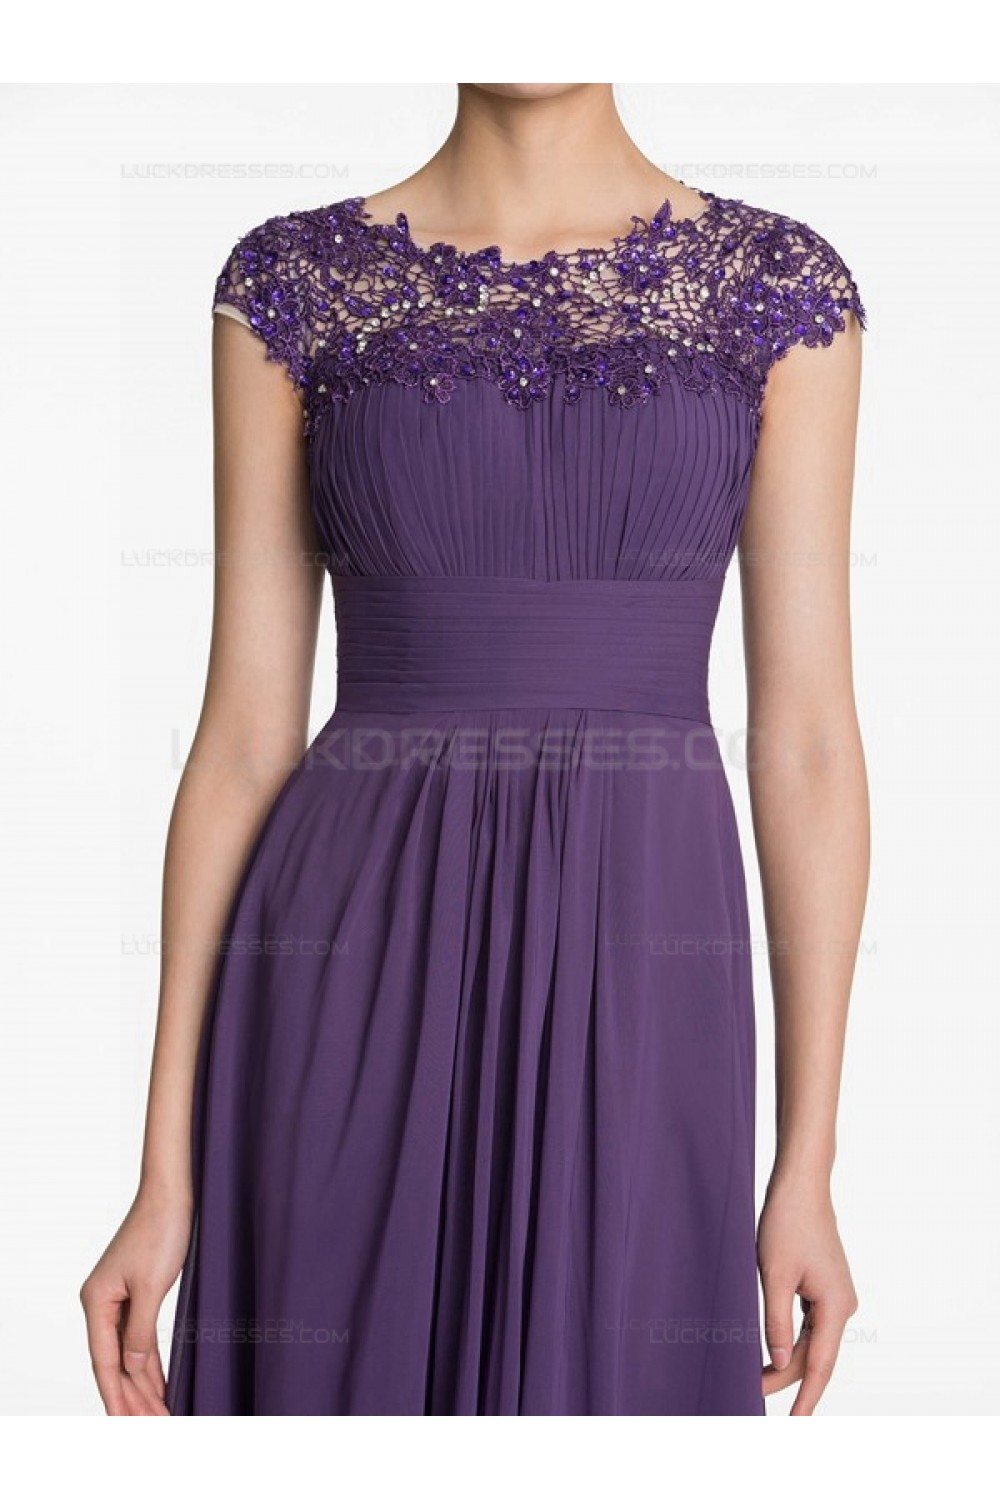 long purple lace chiffon wedding guest dresses bridesmaid